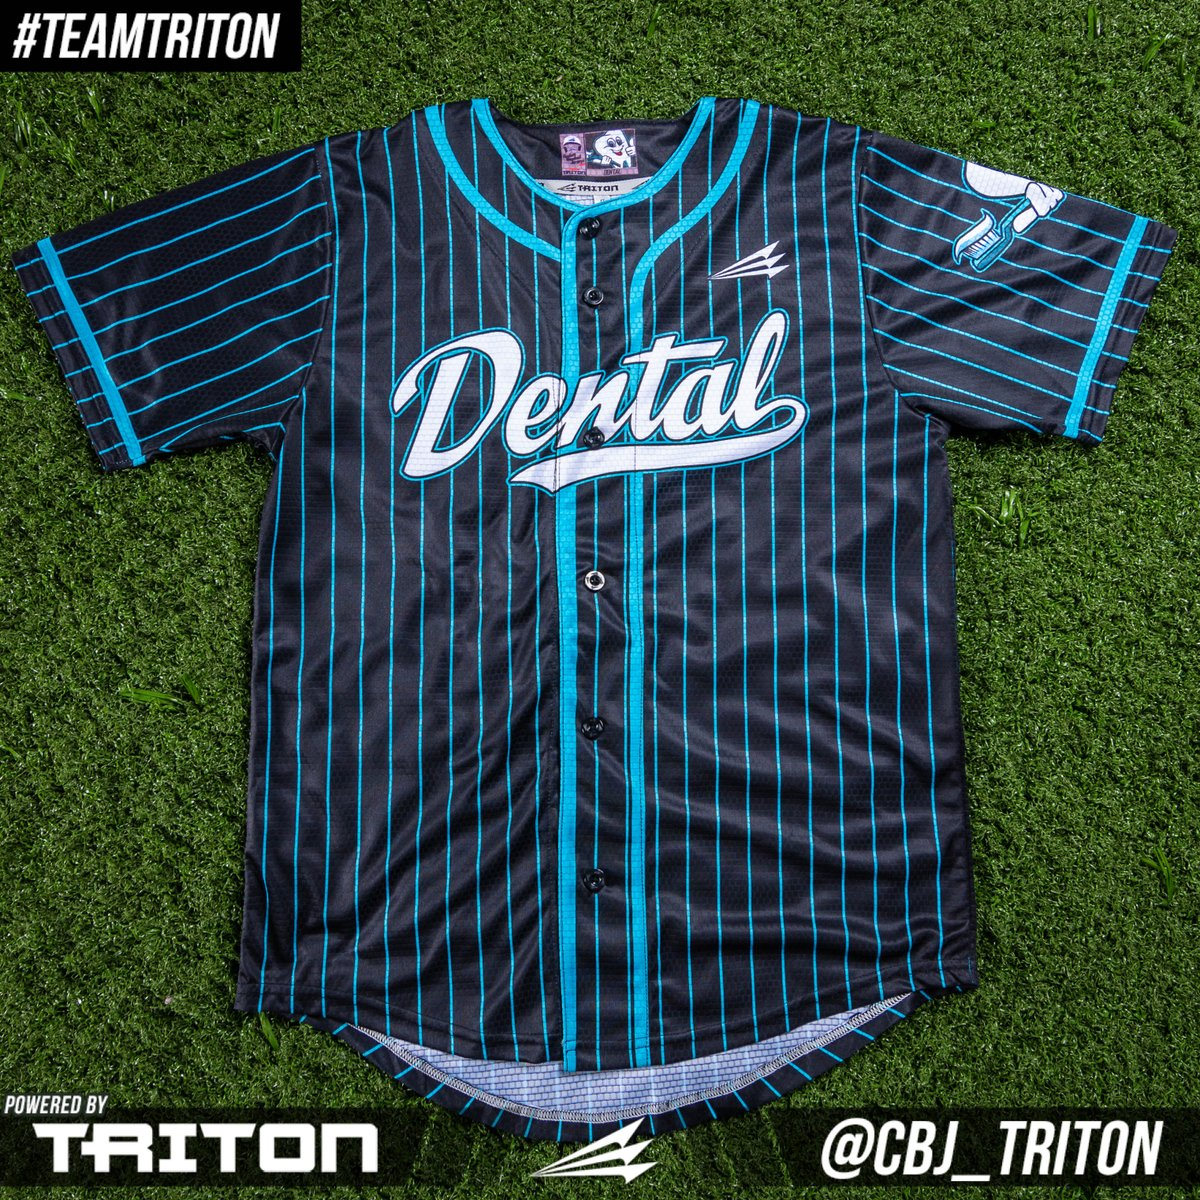 Jerseys Photos And Hastag Kaos Polos Orange Triton Baseball Pinstripes For Team Dental One Of Many Armed Forces Teams That Trust Teamtriton Custom Authentic Original